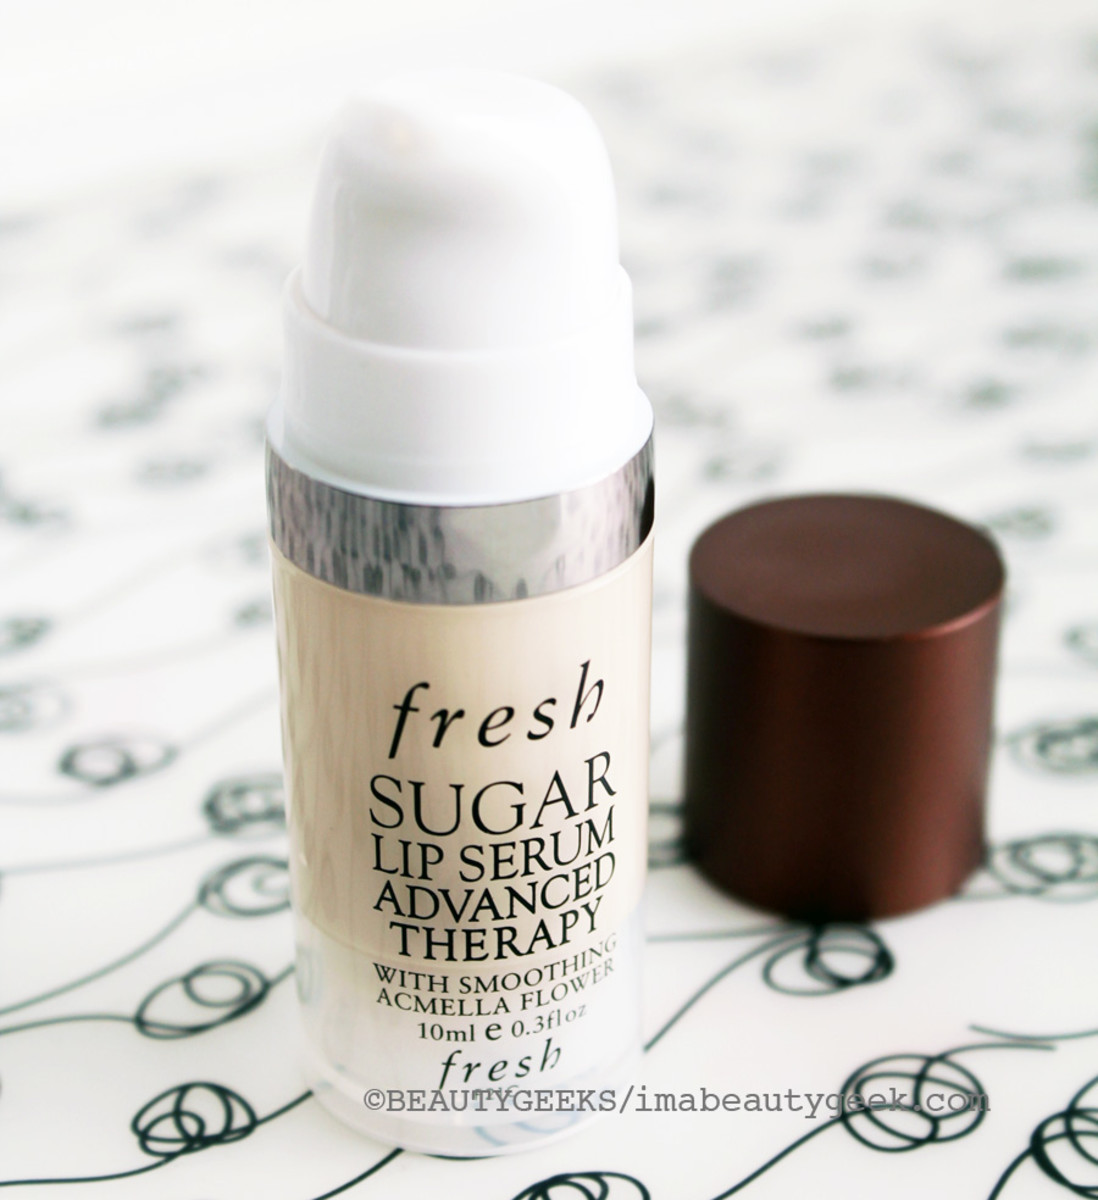 Fresh Sugar Lip Serum Advanced Therapy will change your life